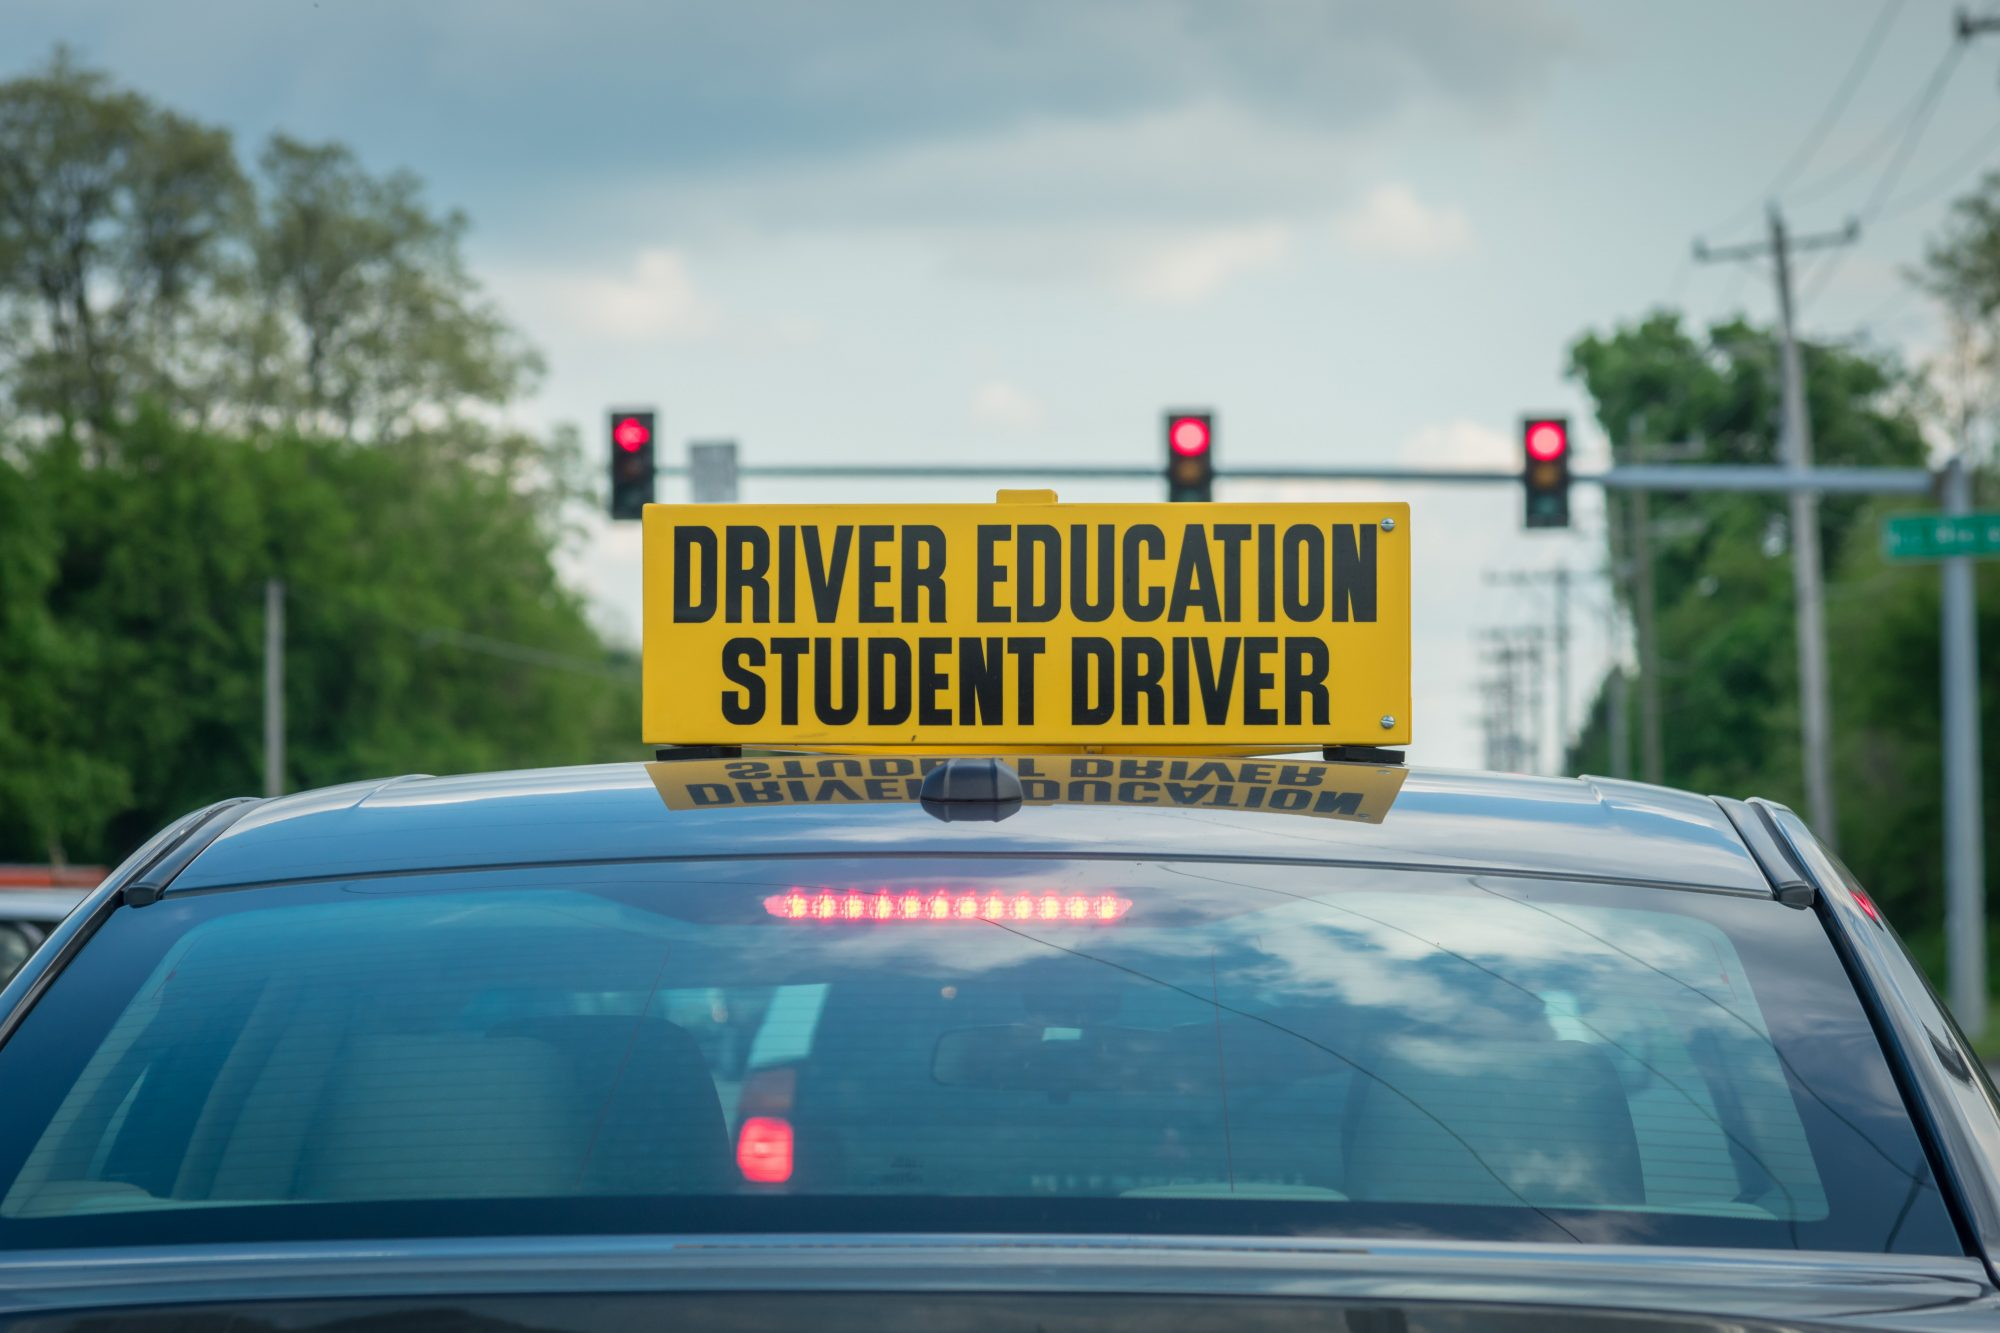 driver education student driver car